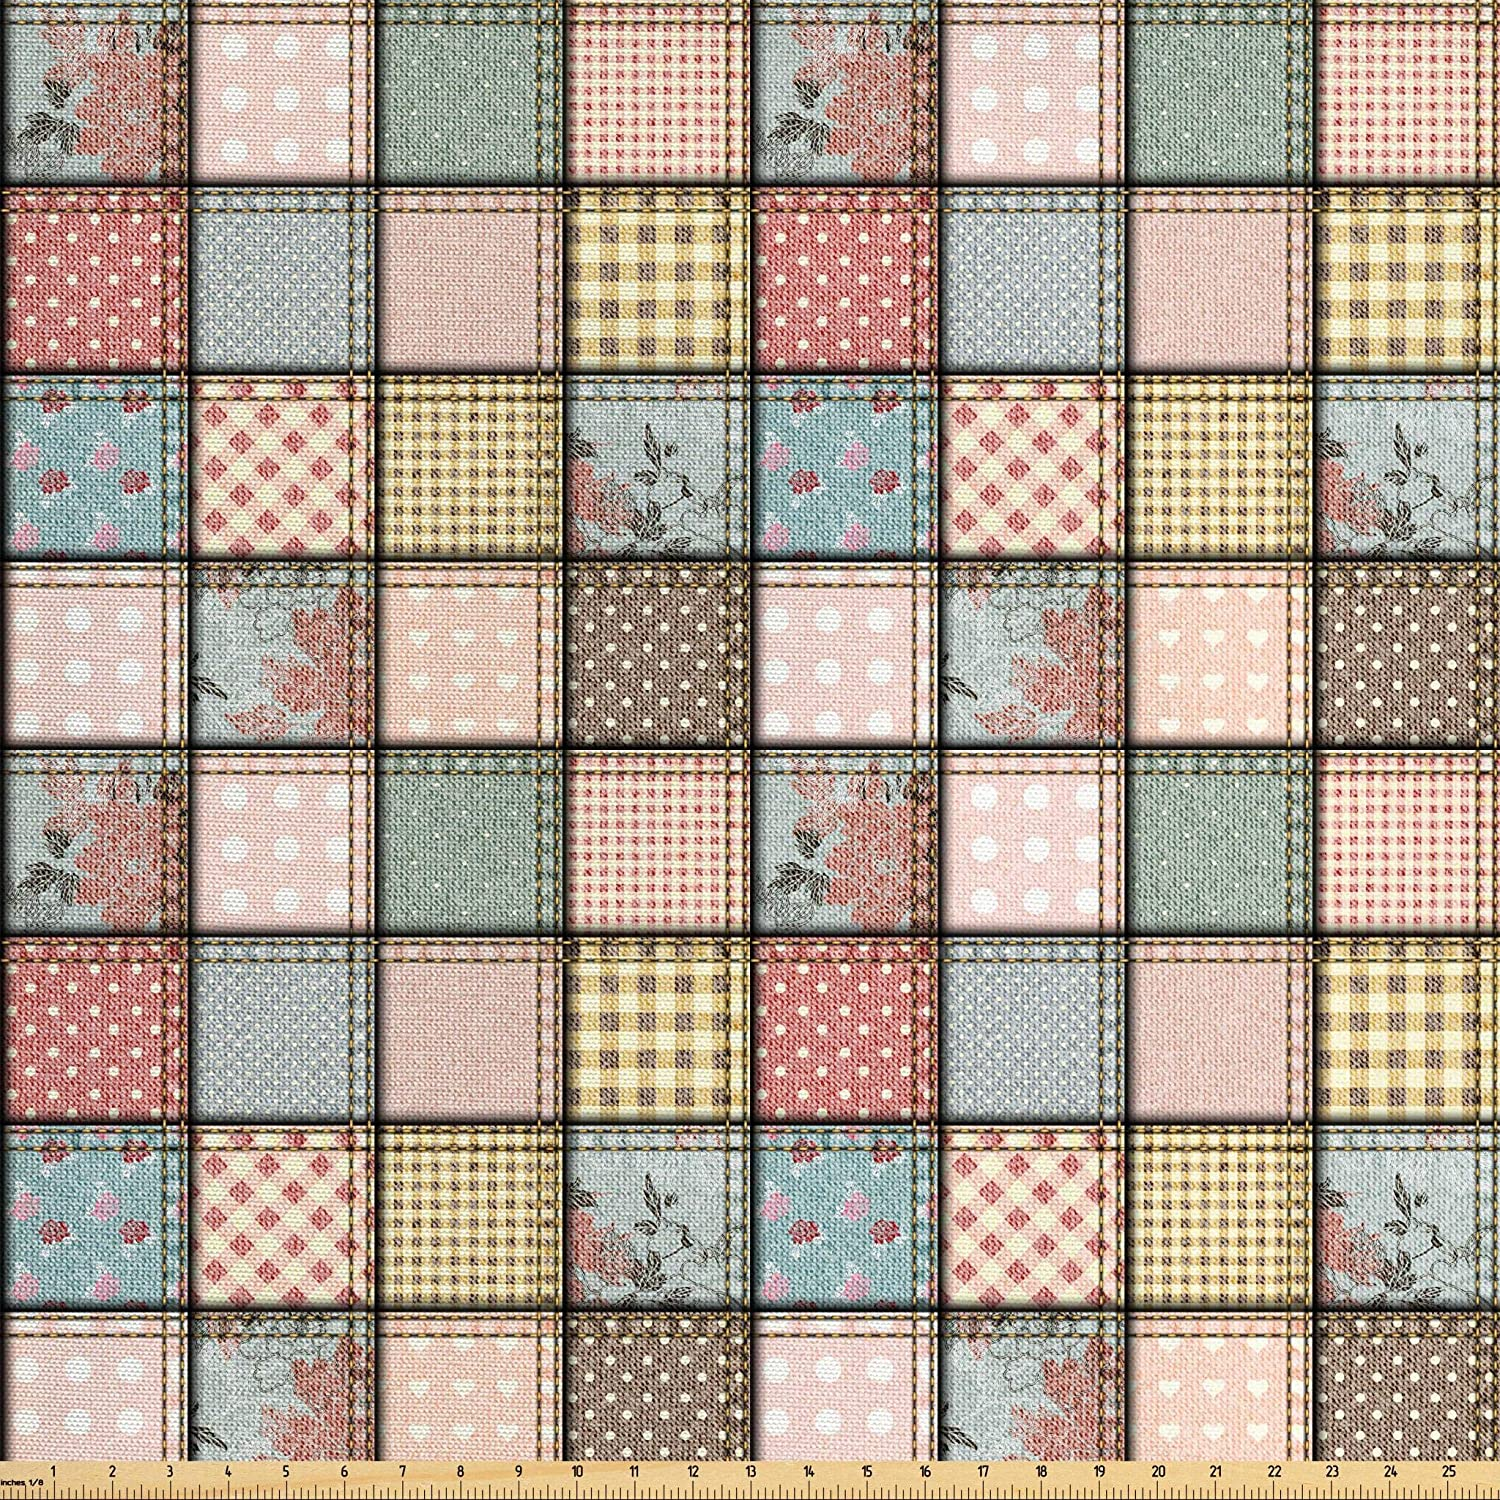 Ambesonne Shabby Flora Fabric by The Yard, Vintage Style Patchwork Design Colorful and Details Vibes, Decorative Fabric for Upholstery and Home Accents, 2 Yards, Seafoam Blush